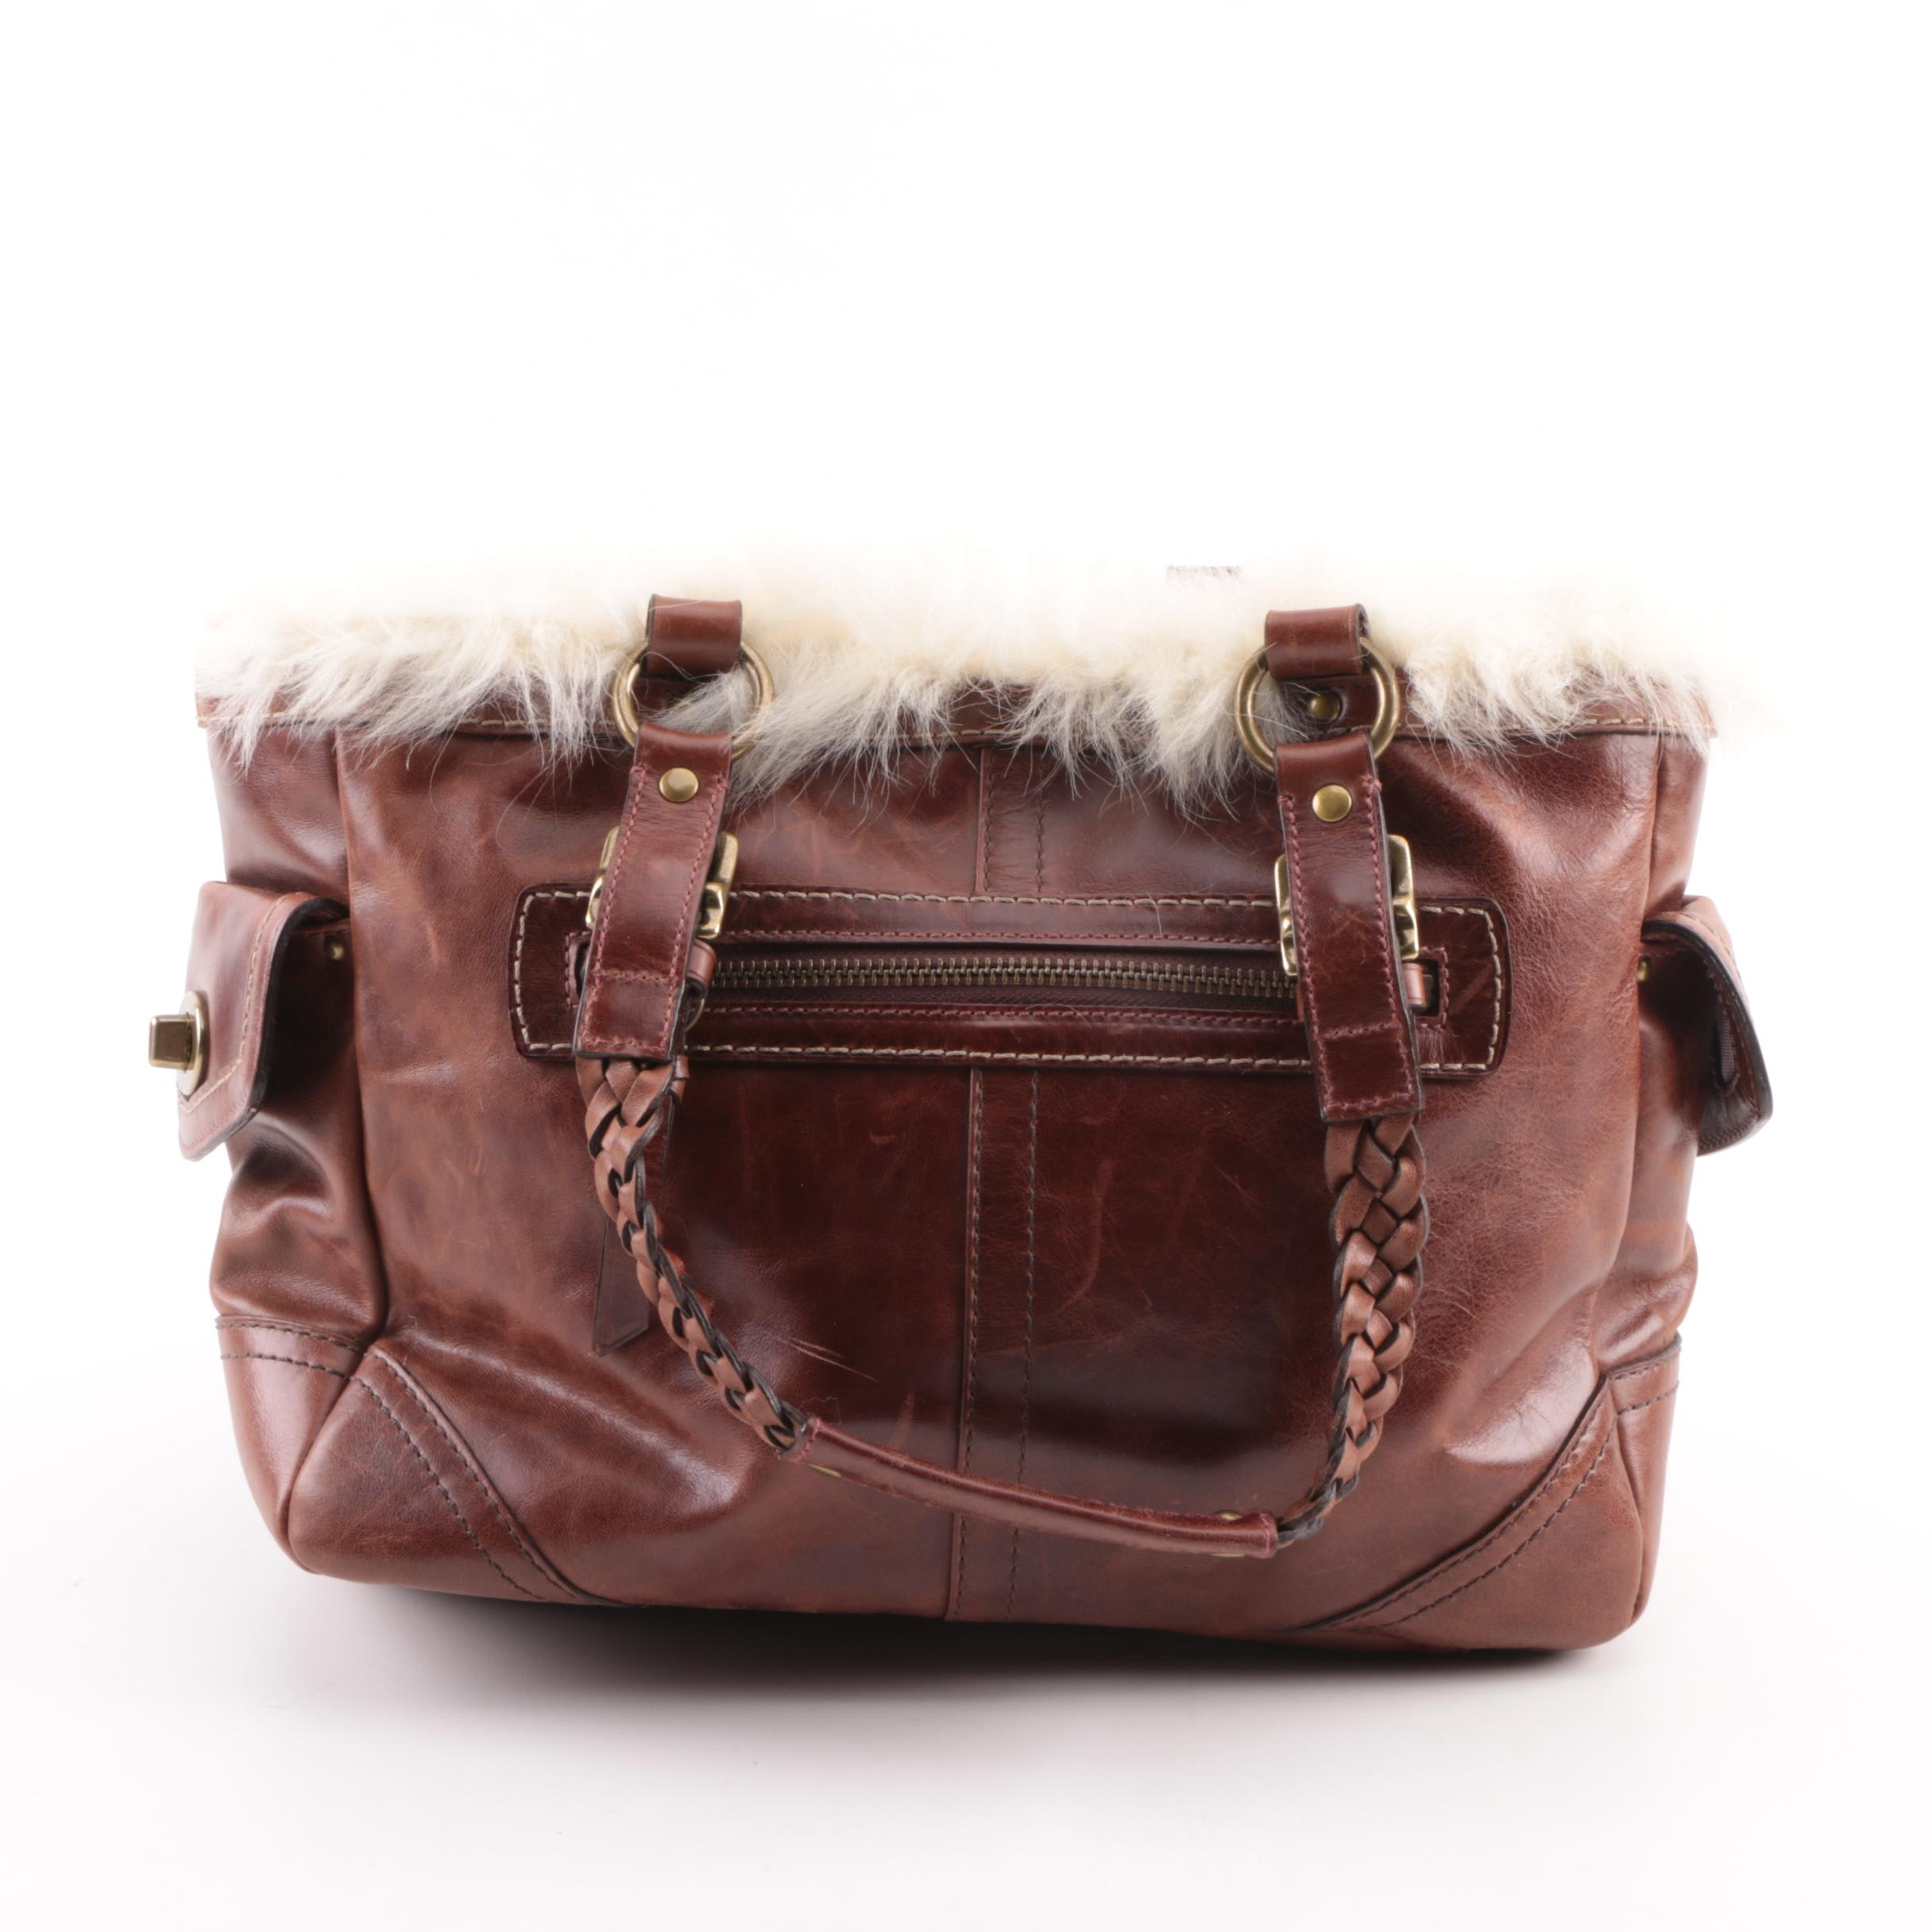 Coach Brown Leather and Shearling Satchel